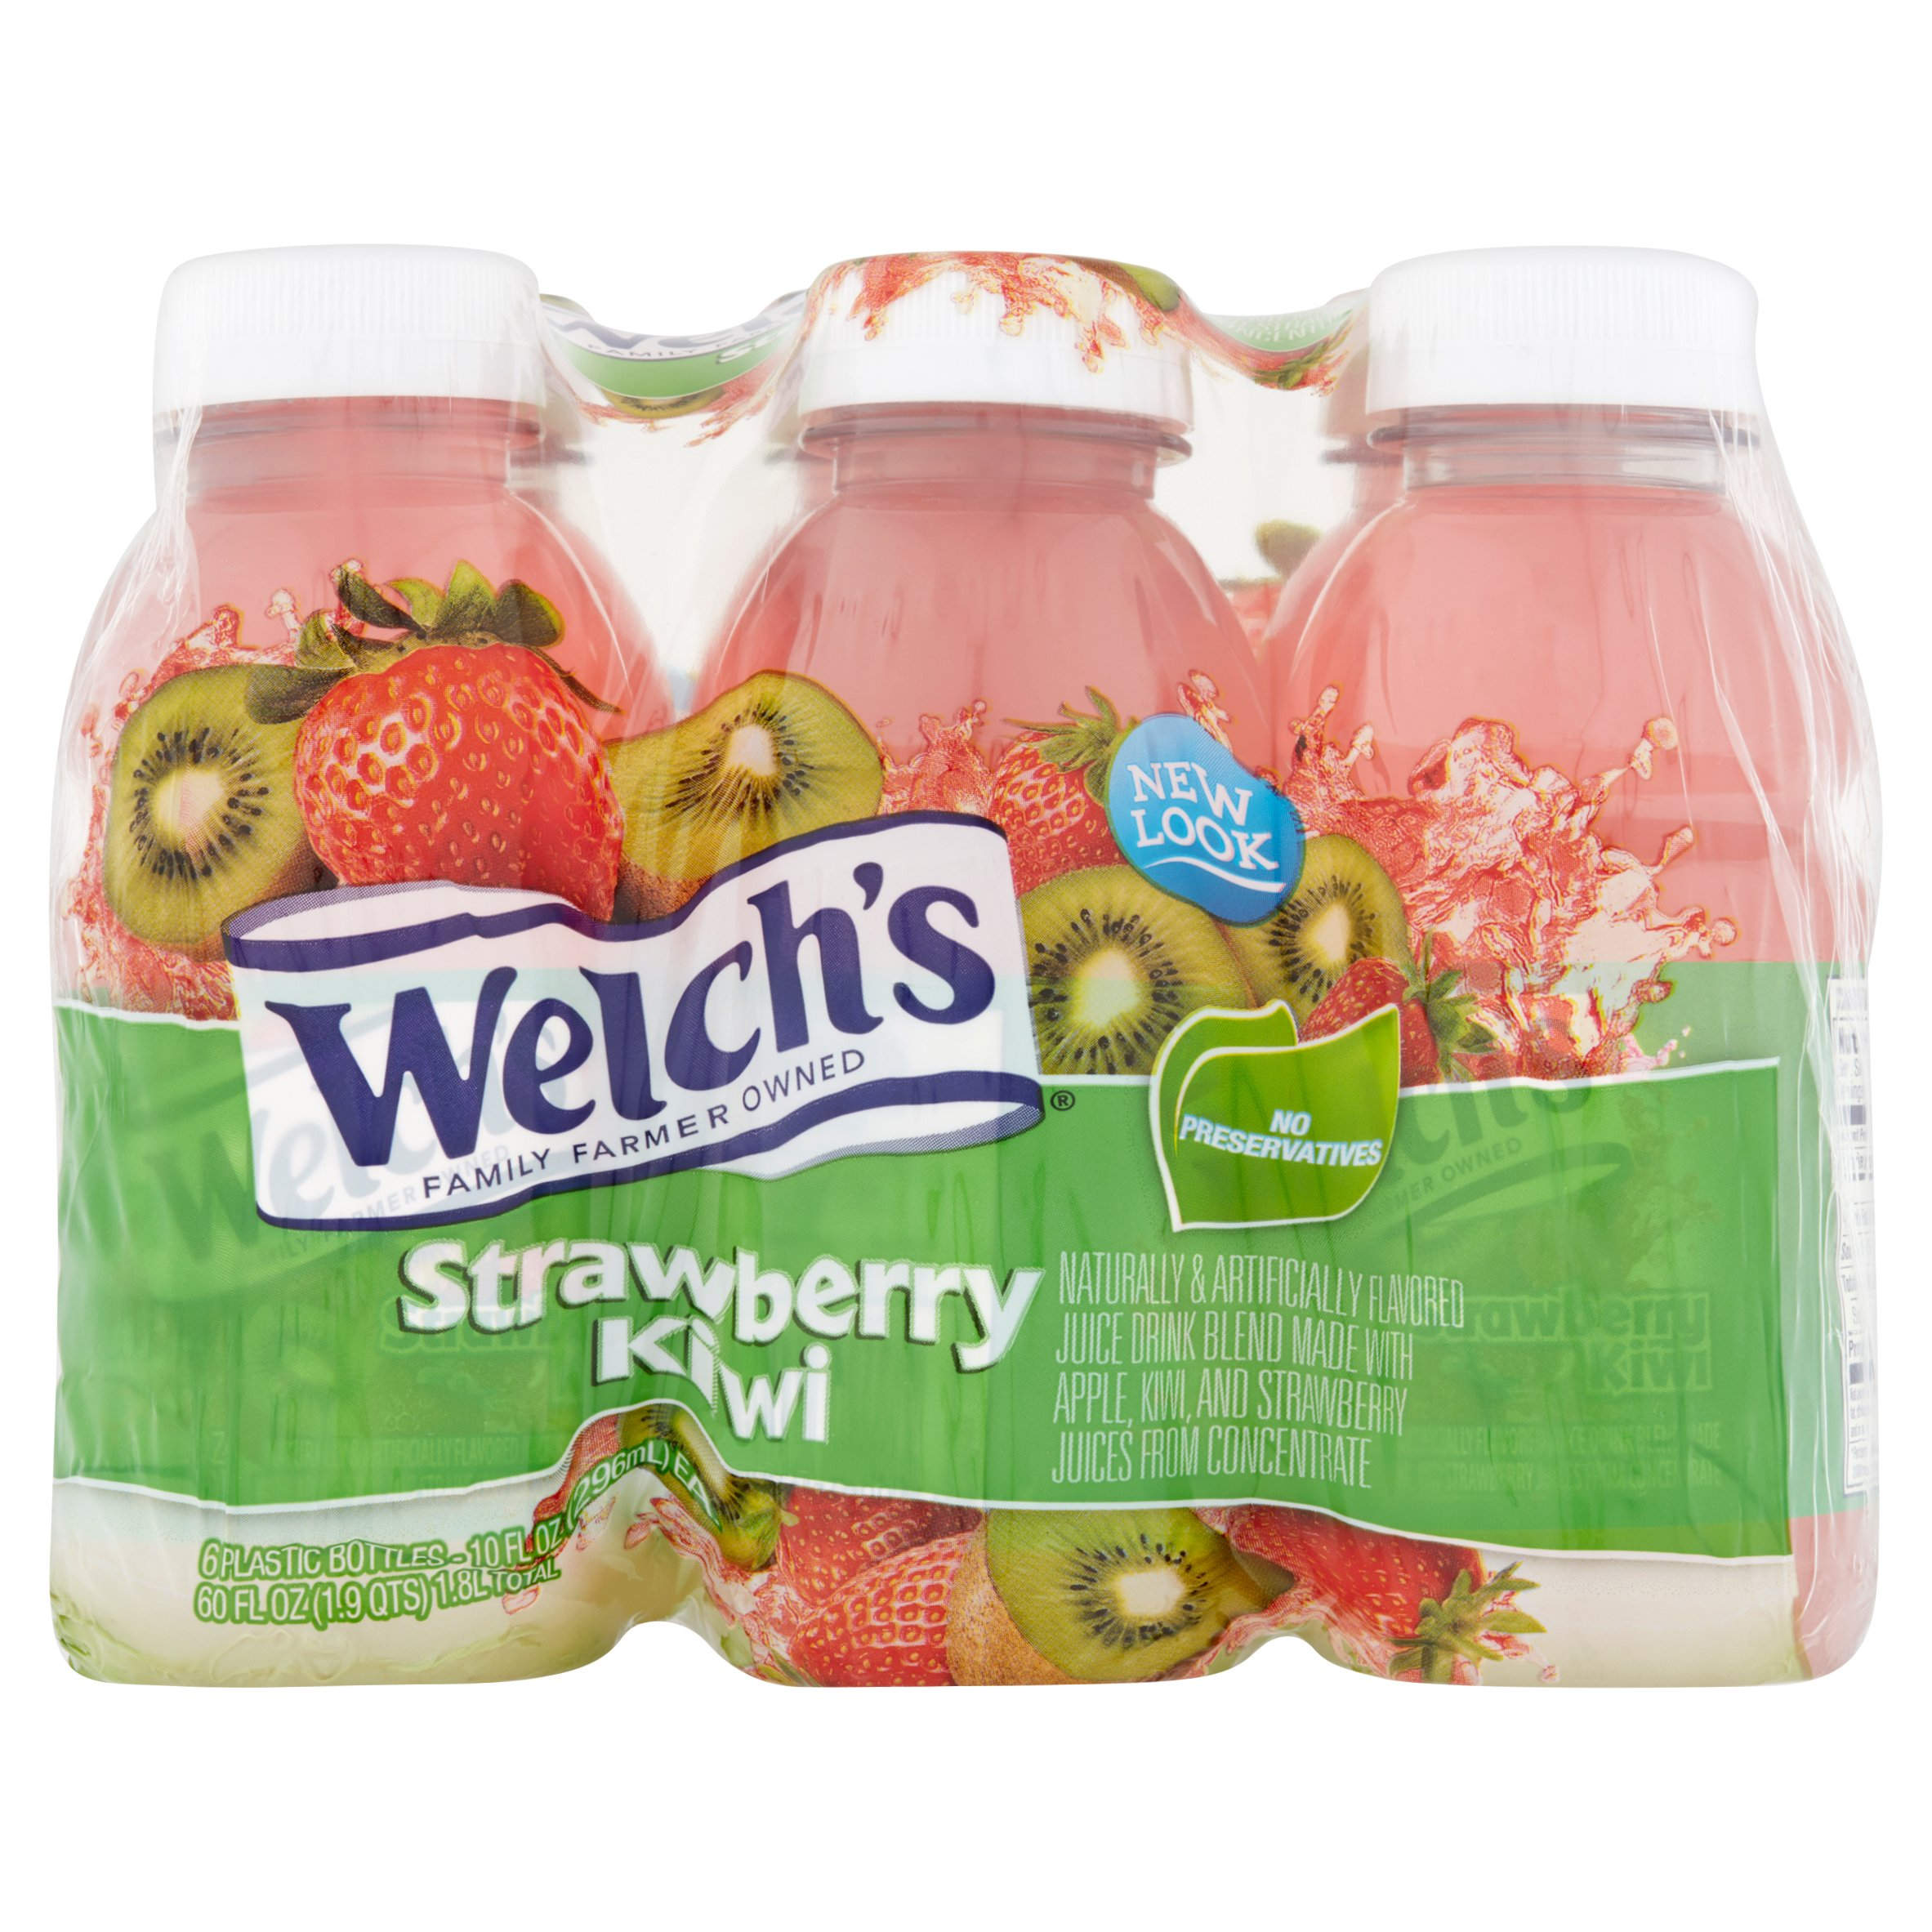 Welch's Juice, Strawberry Kiwi, 10 Fl Oz, 6 Count